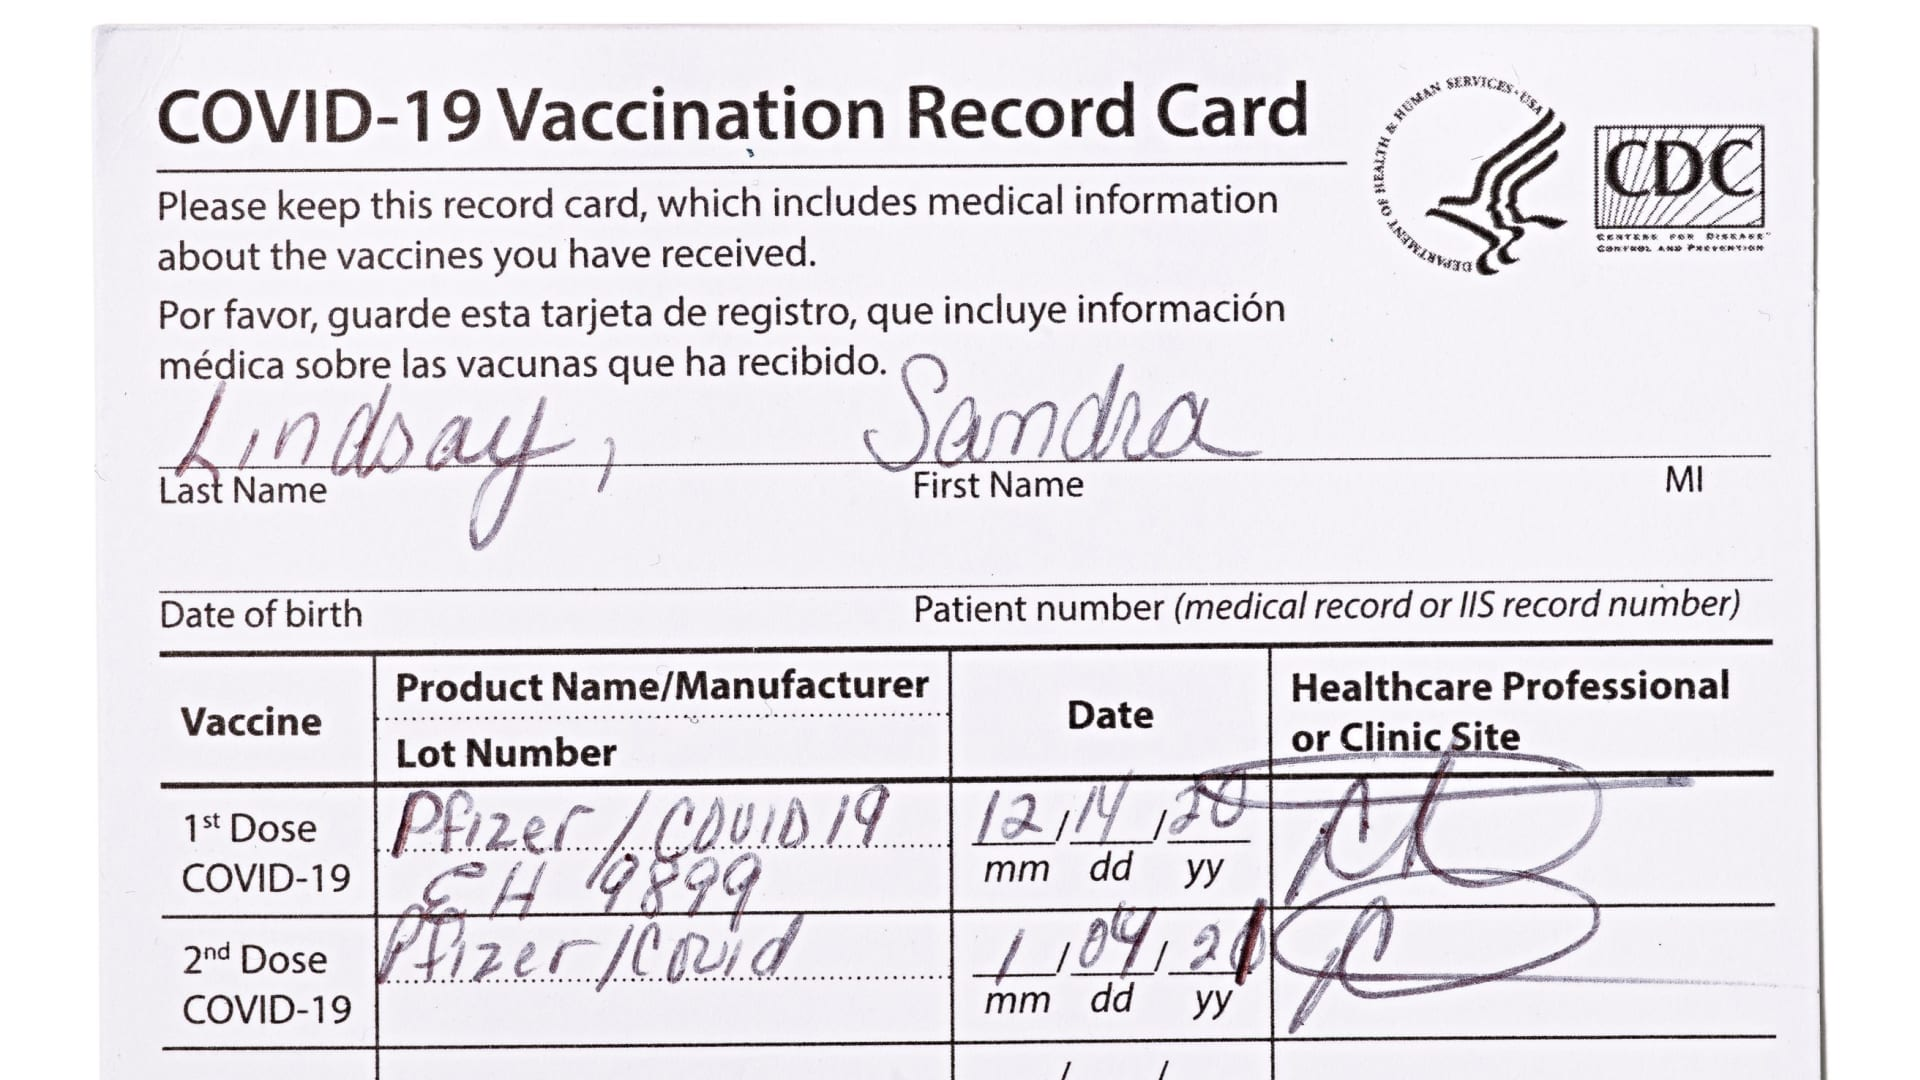 Nurse Sandra Lindsay's vaccine record card are seen after being donated to the collection of the Smithsonian's National Museum of American History in Washington, U.S. March 4, 2021.